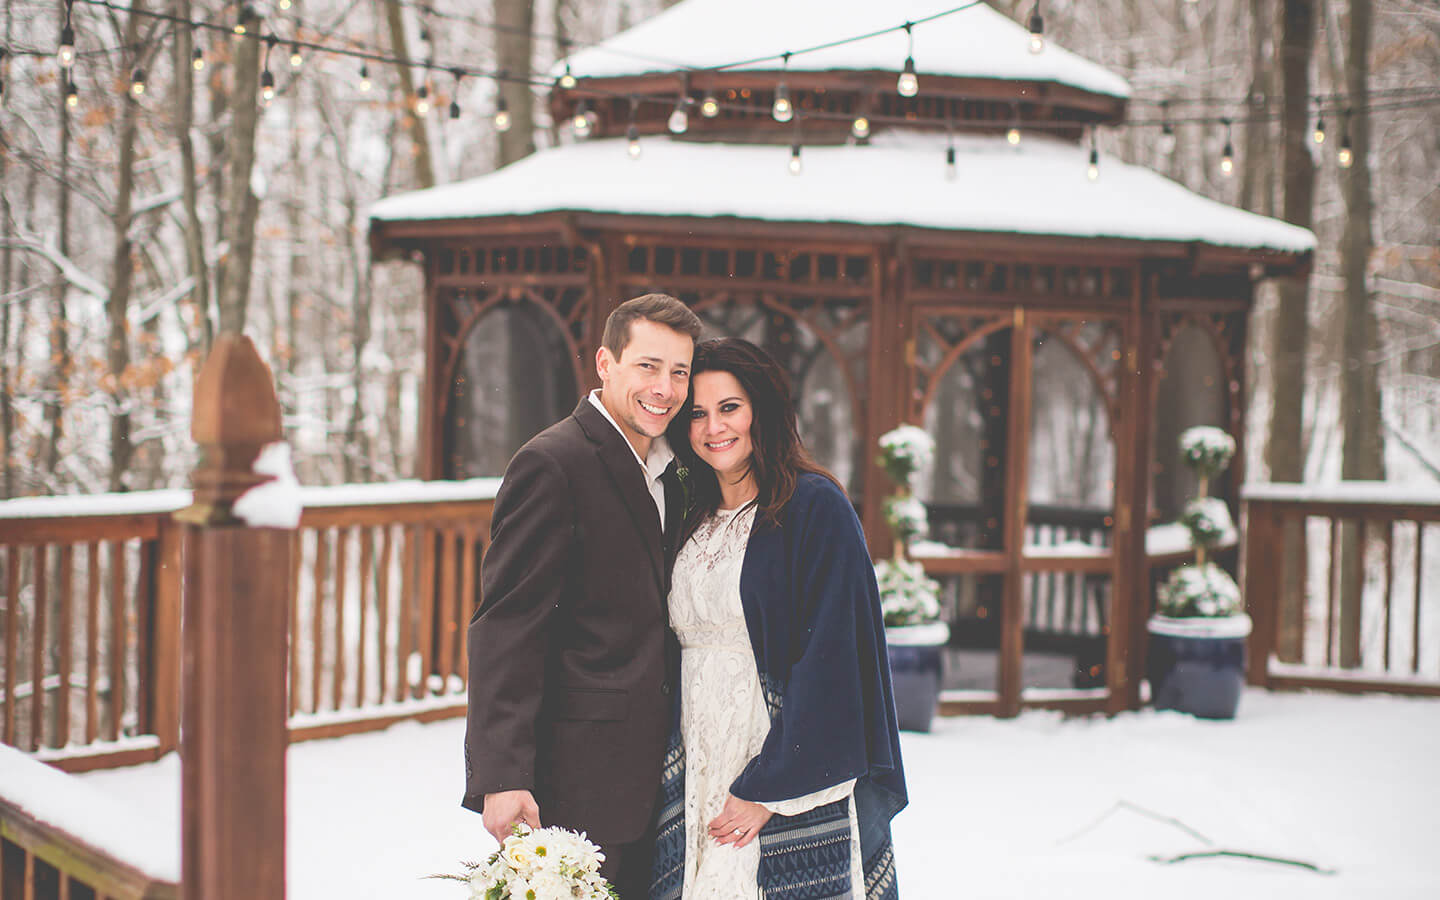 Bride and groom in front of a snowy gazebo at a Michigan Wedding in the winter